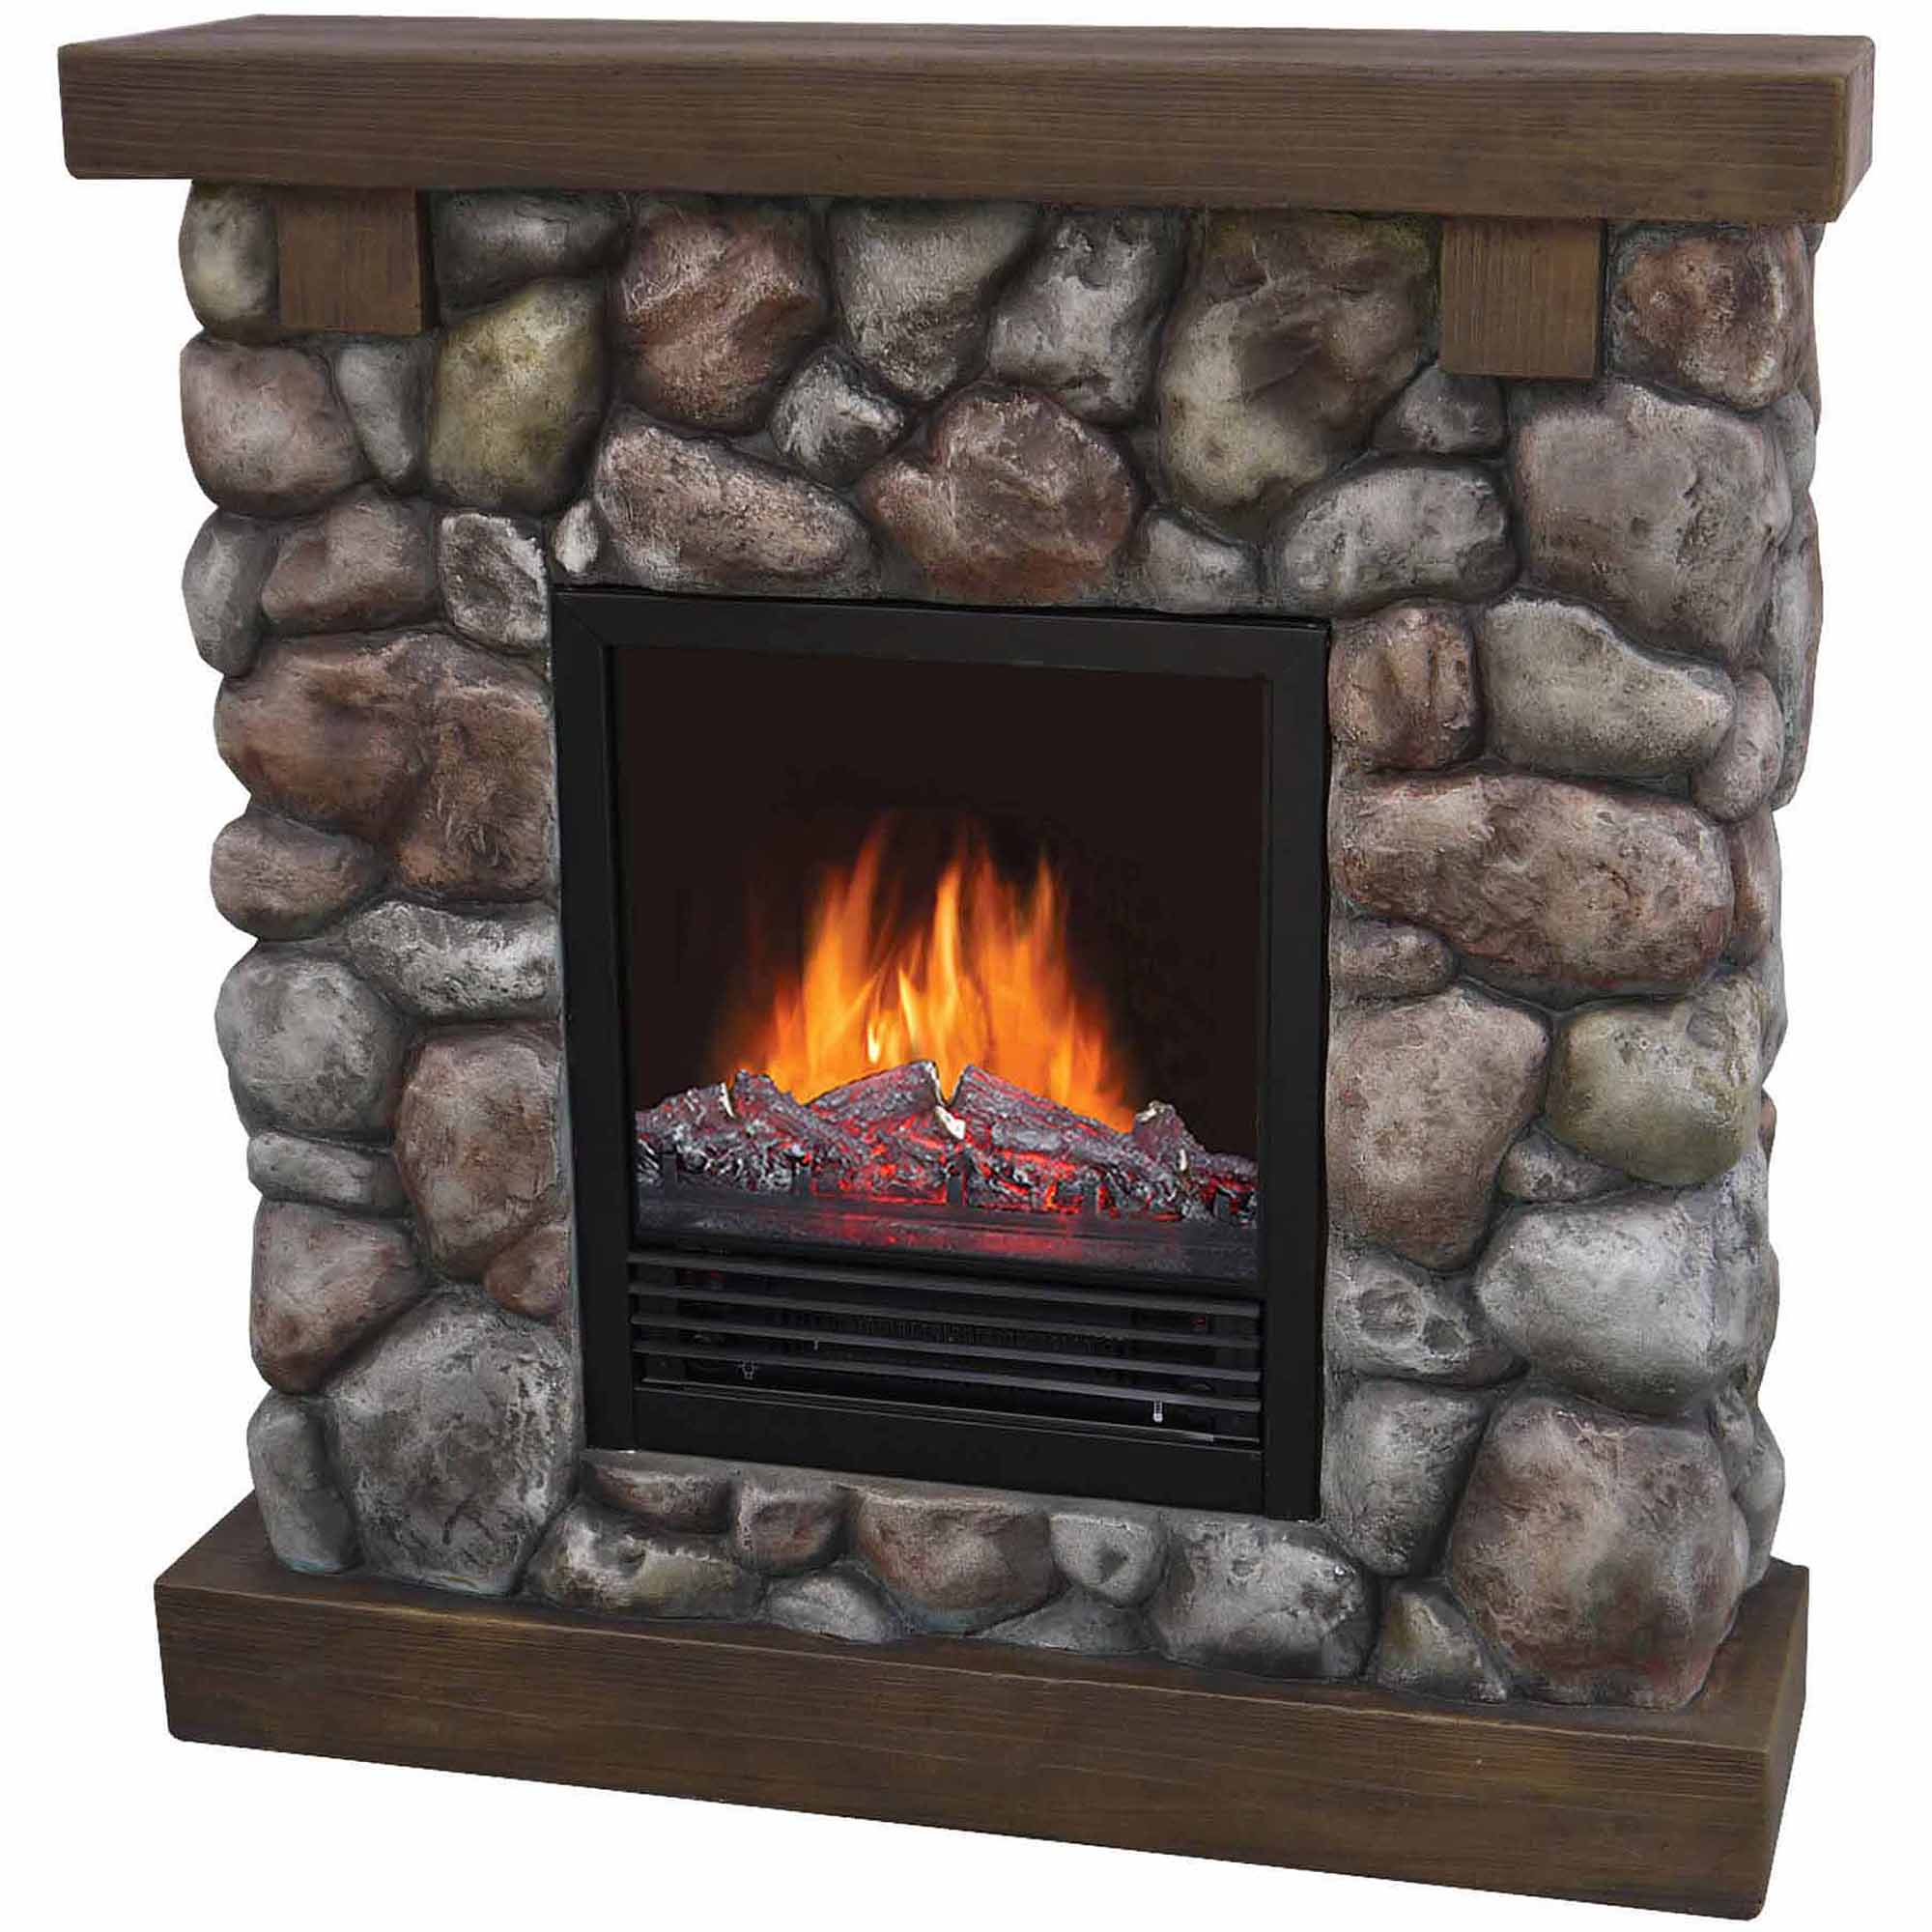 Quality craft electric fireplace - 37 Polyfiber Electric Fireplace River Blue